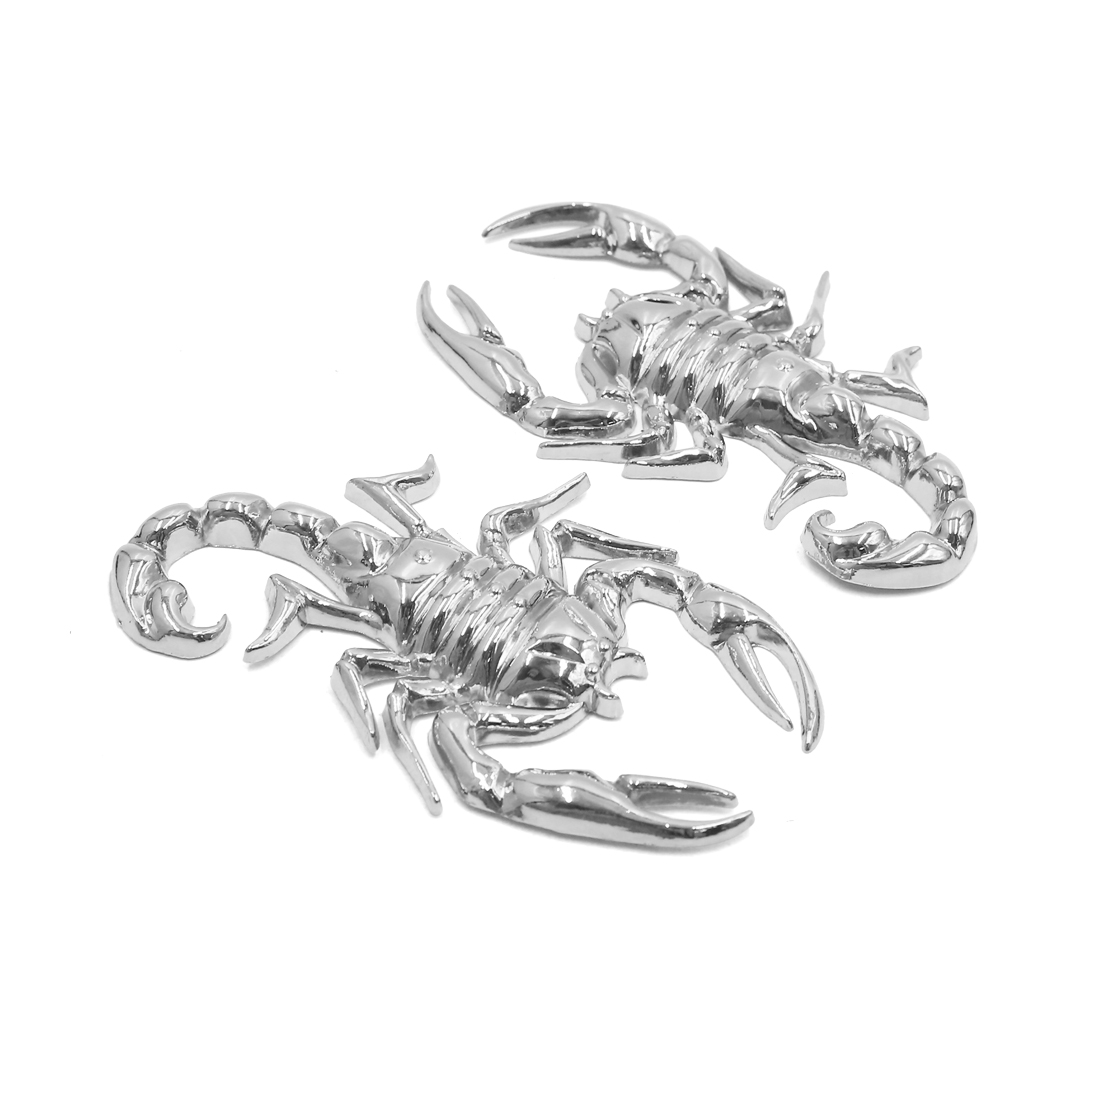 2Pcs Silver Tone Scorpion Design Car Exterior Reflective 3D Sticker Decor